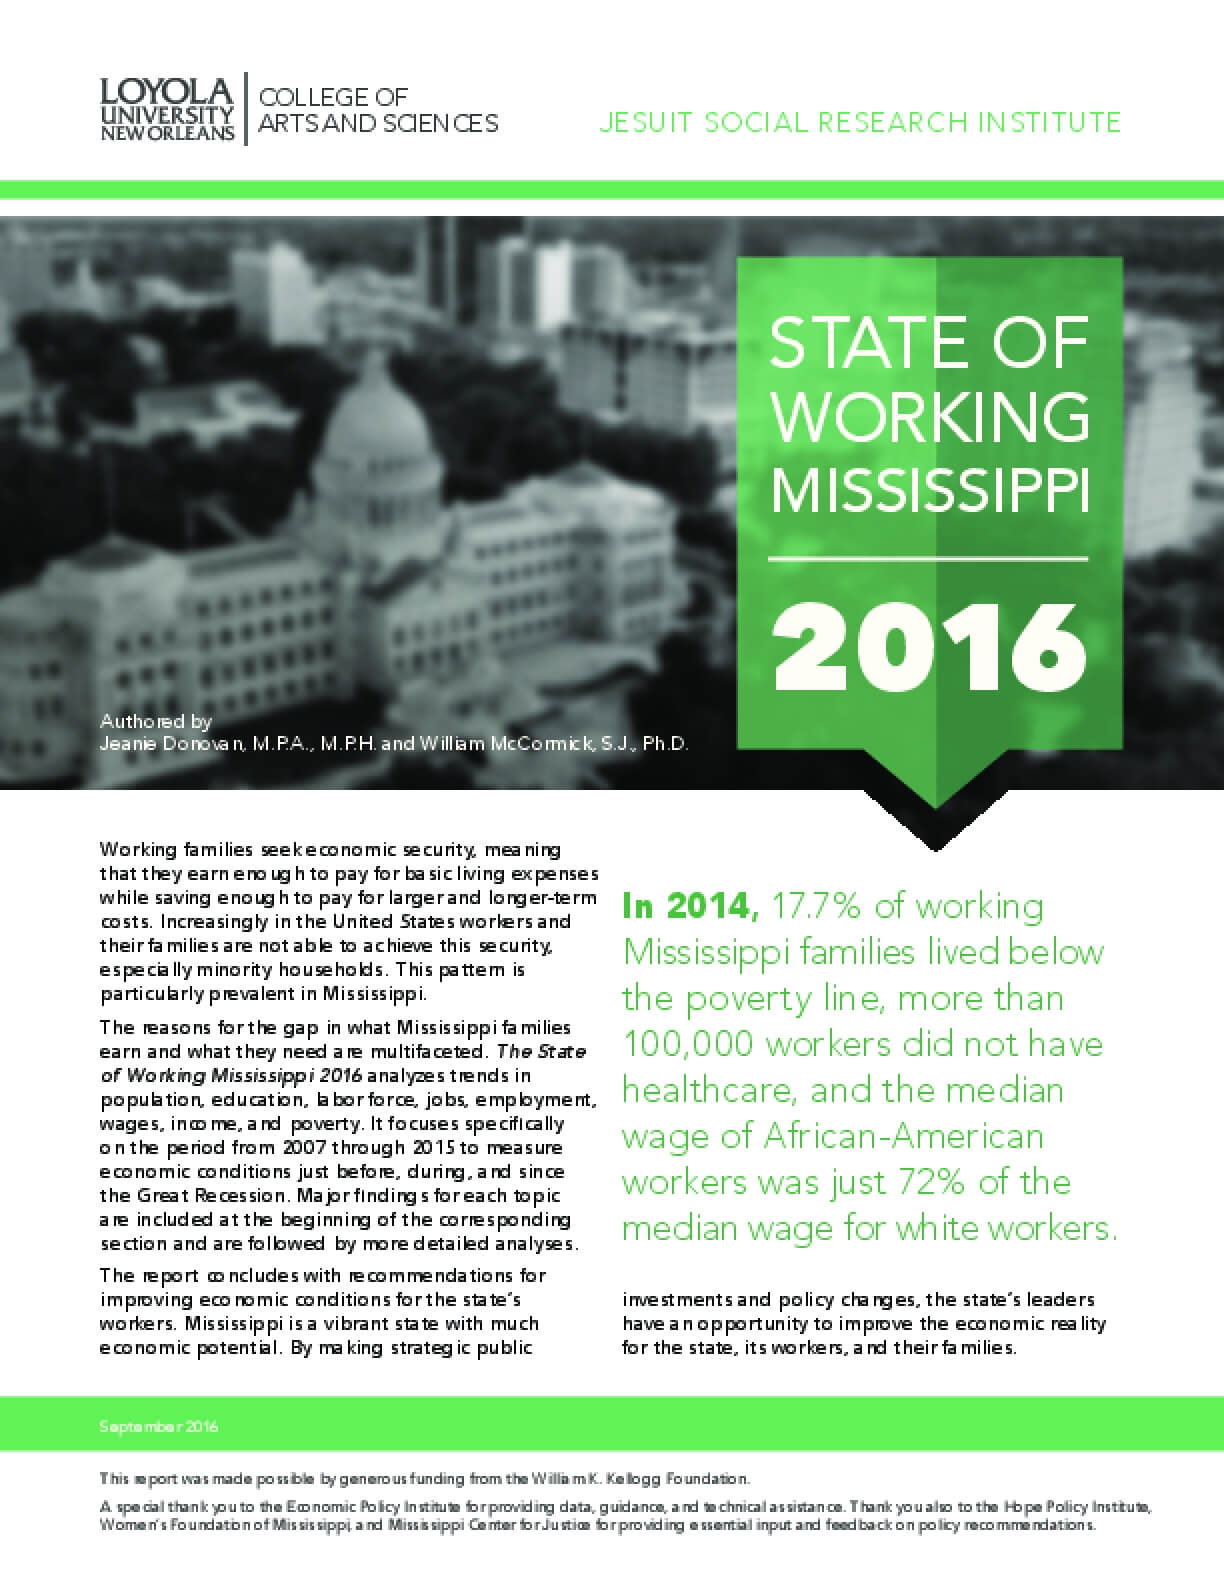 State of Working Mississippi, 2016